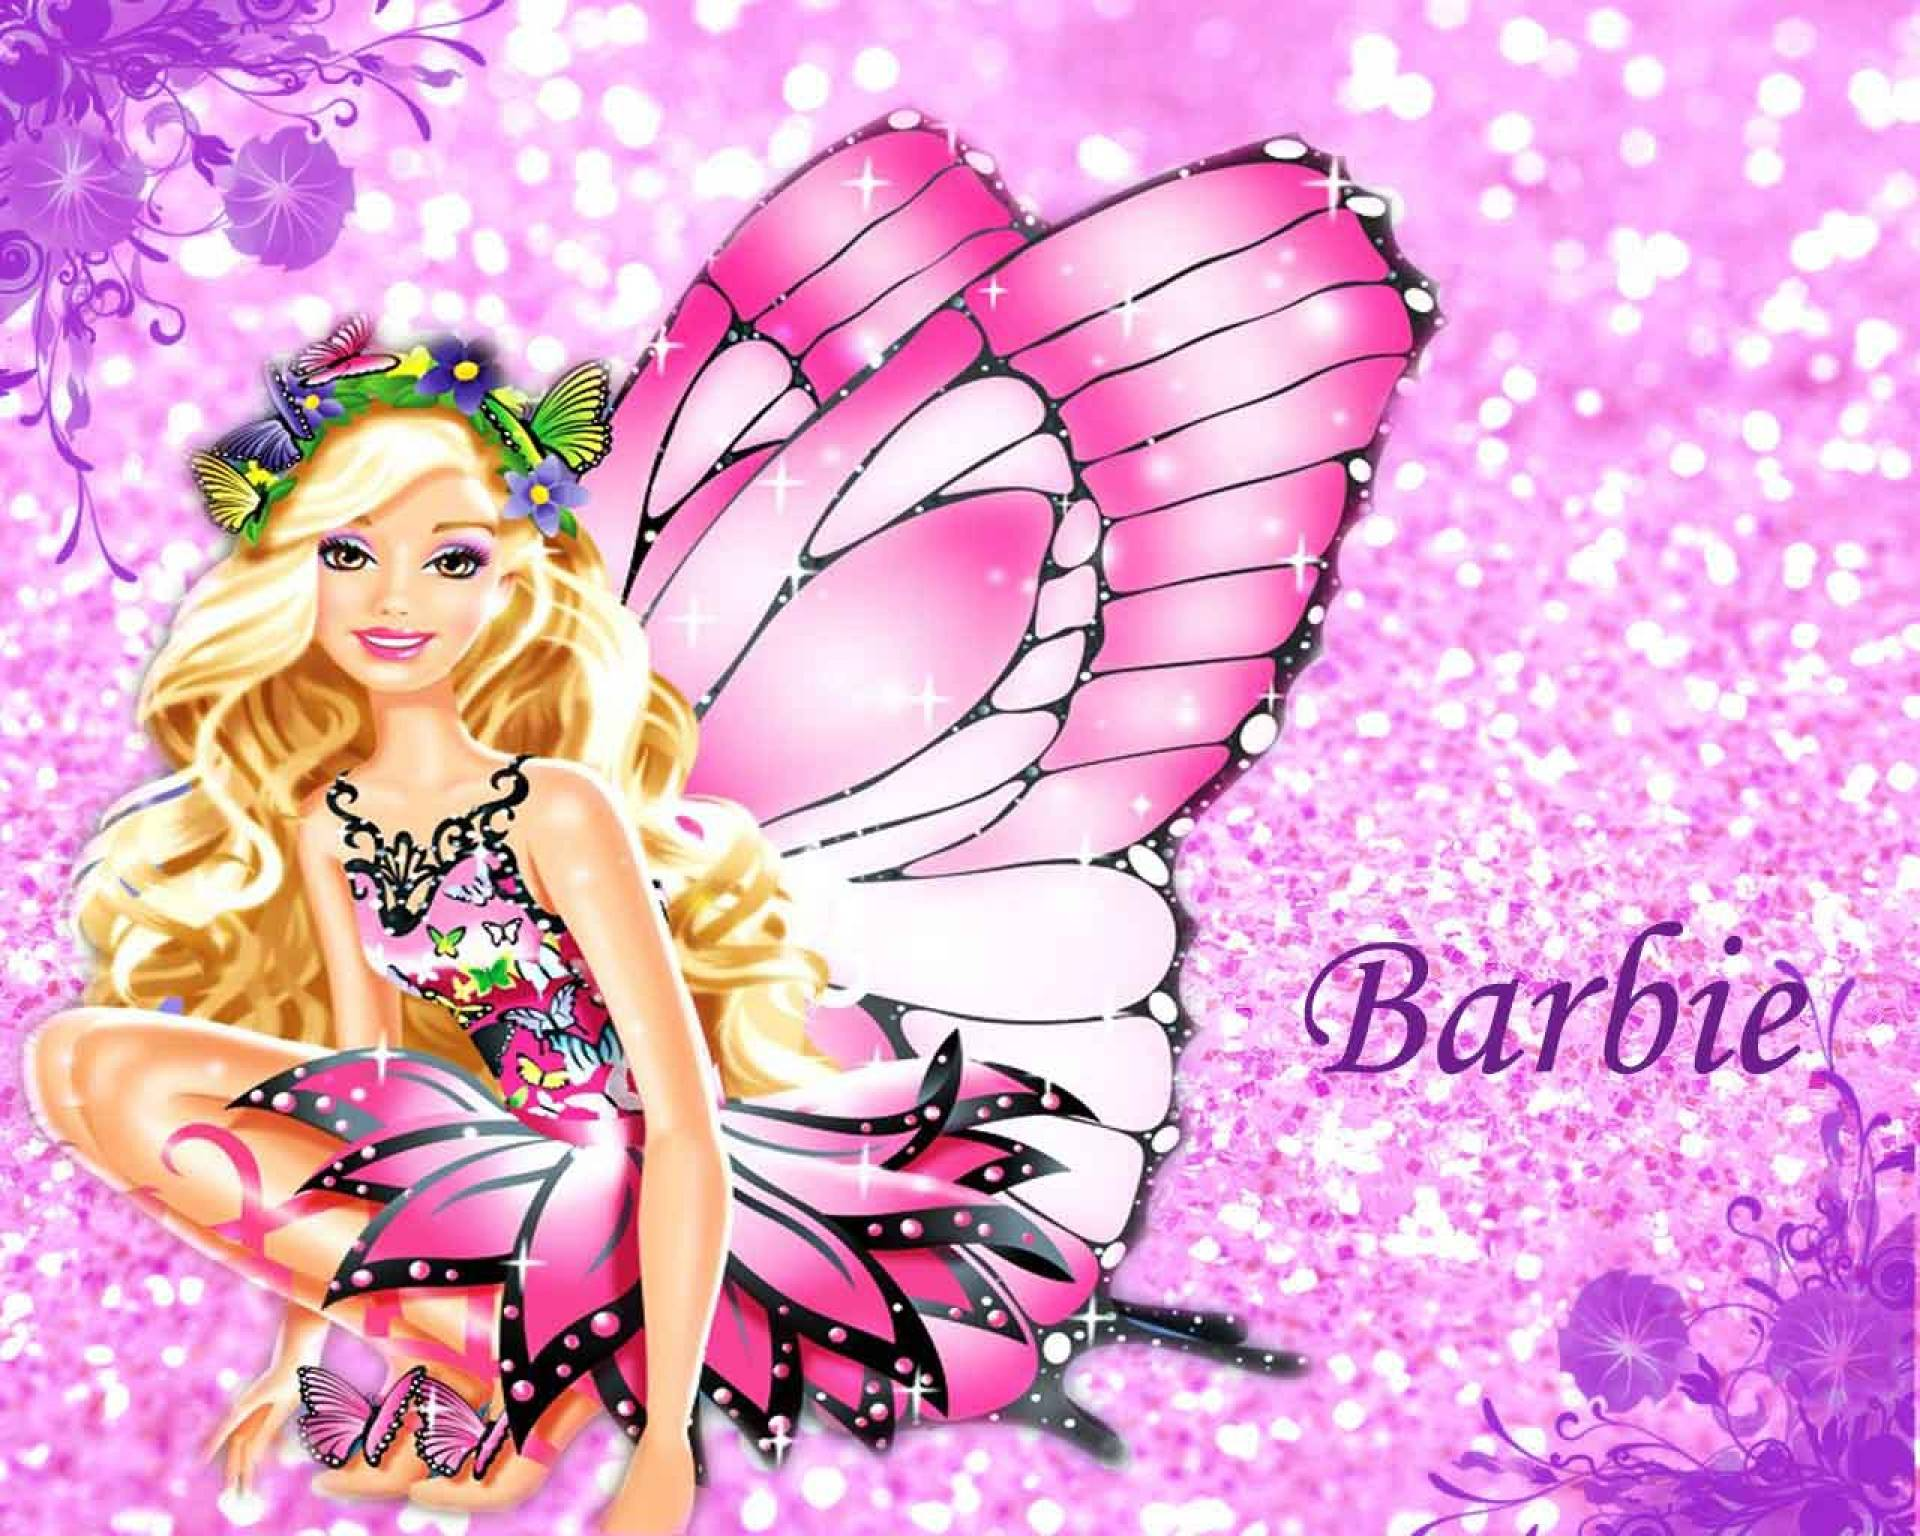 Barbie Pink Backgrounds